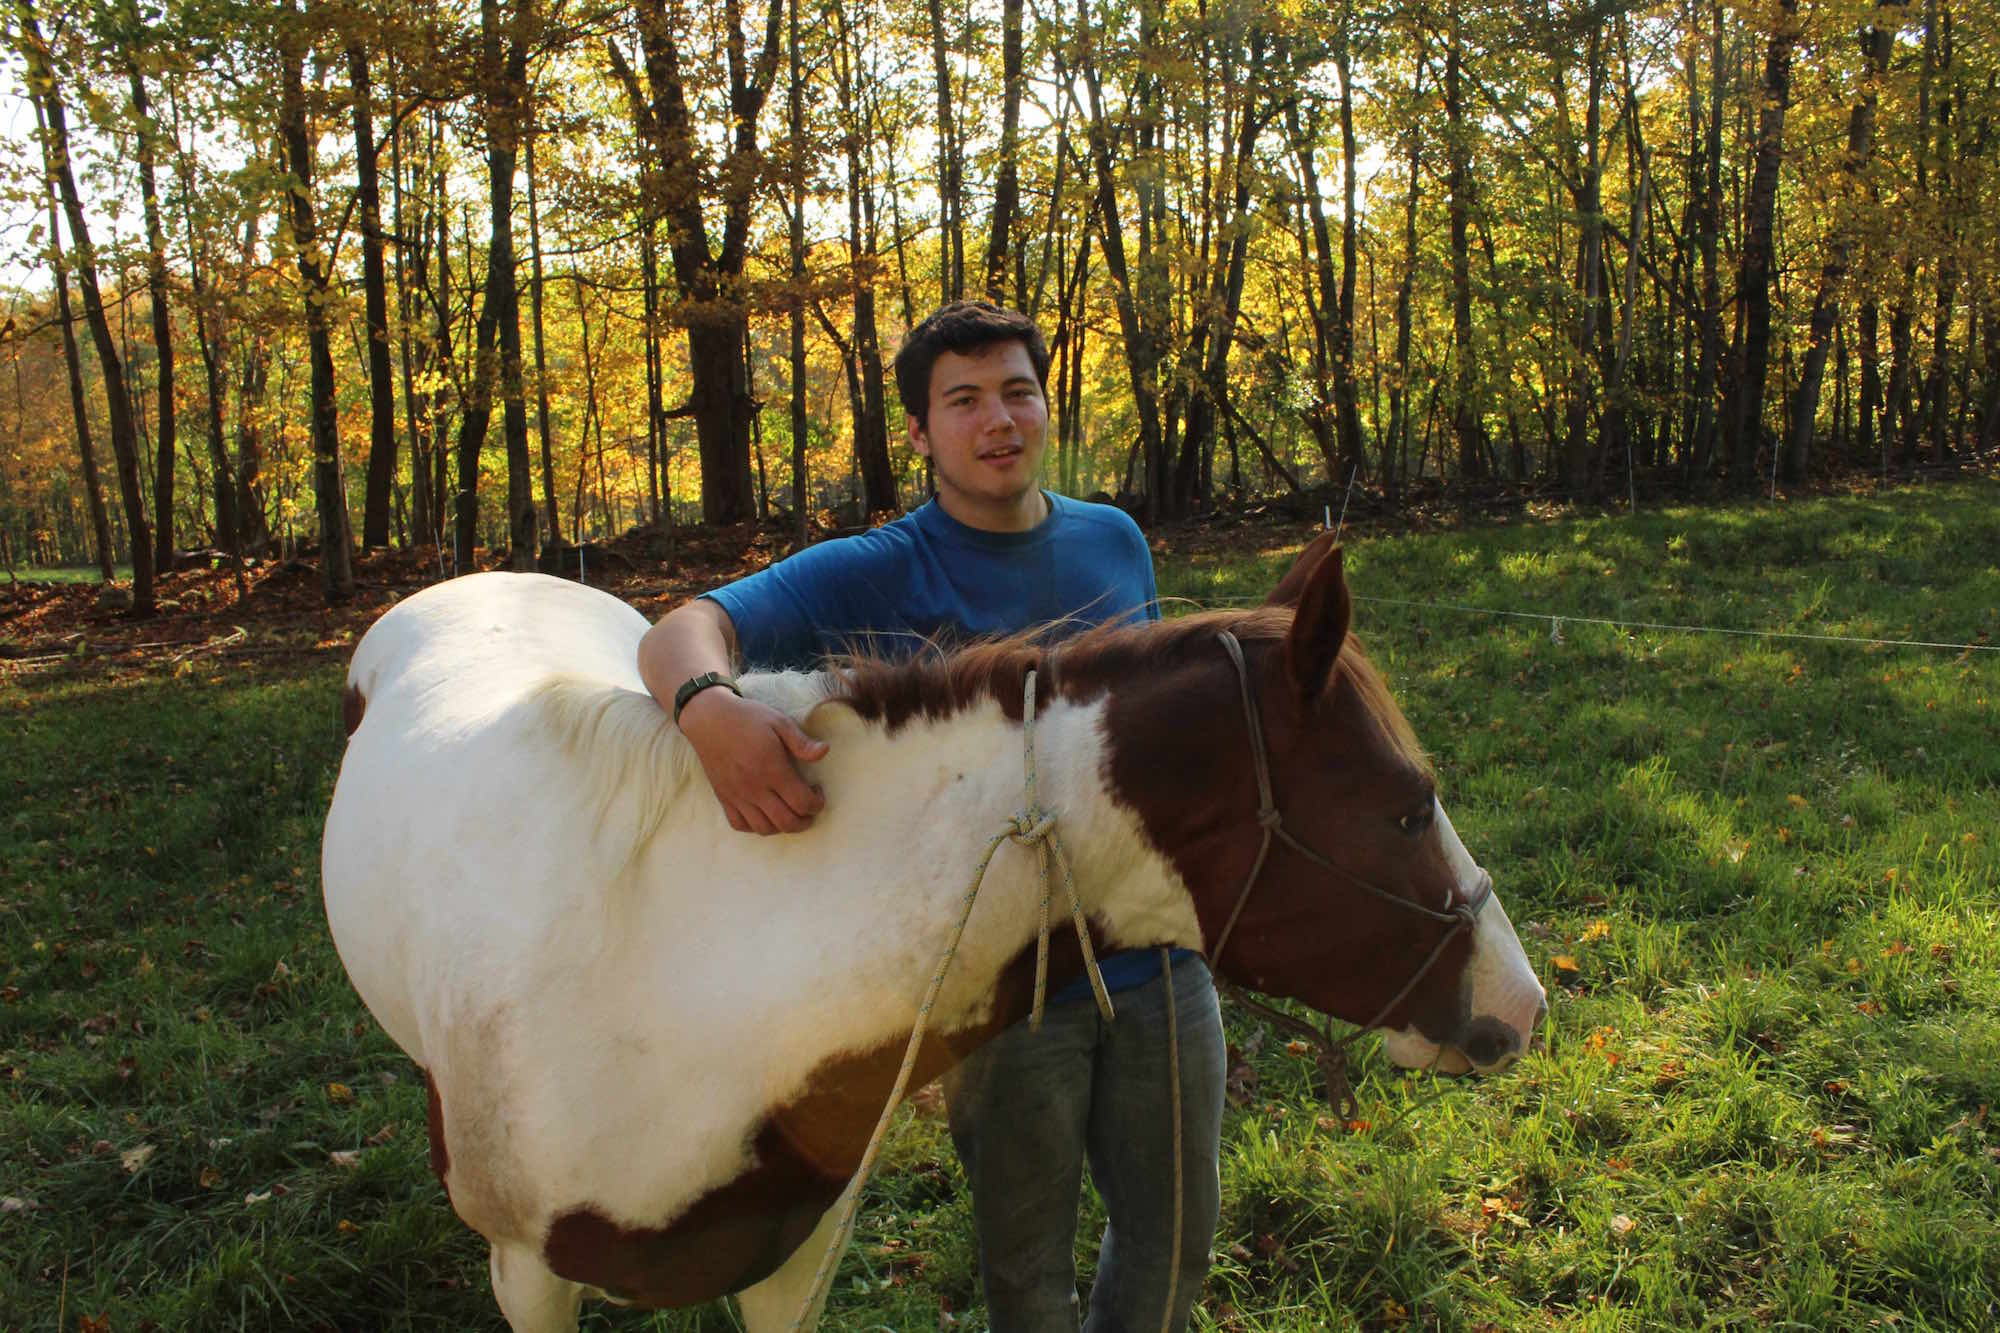 At work with the horses